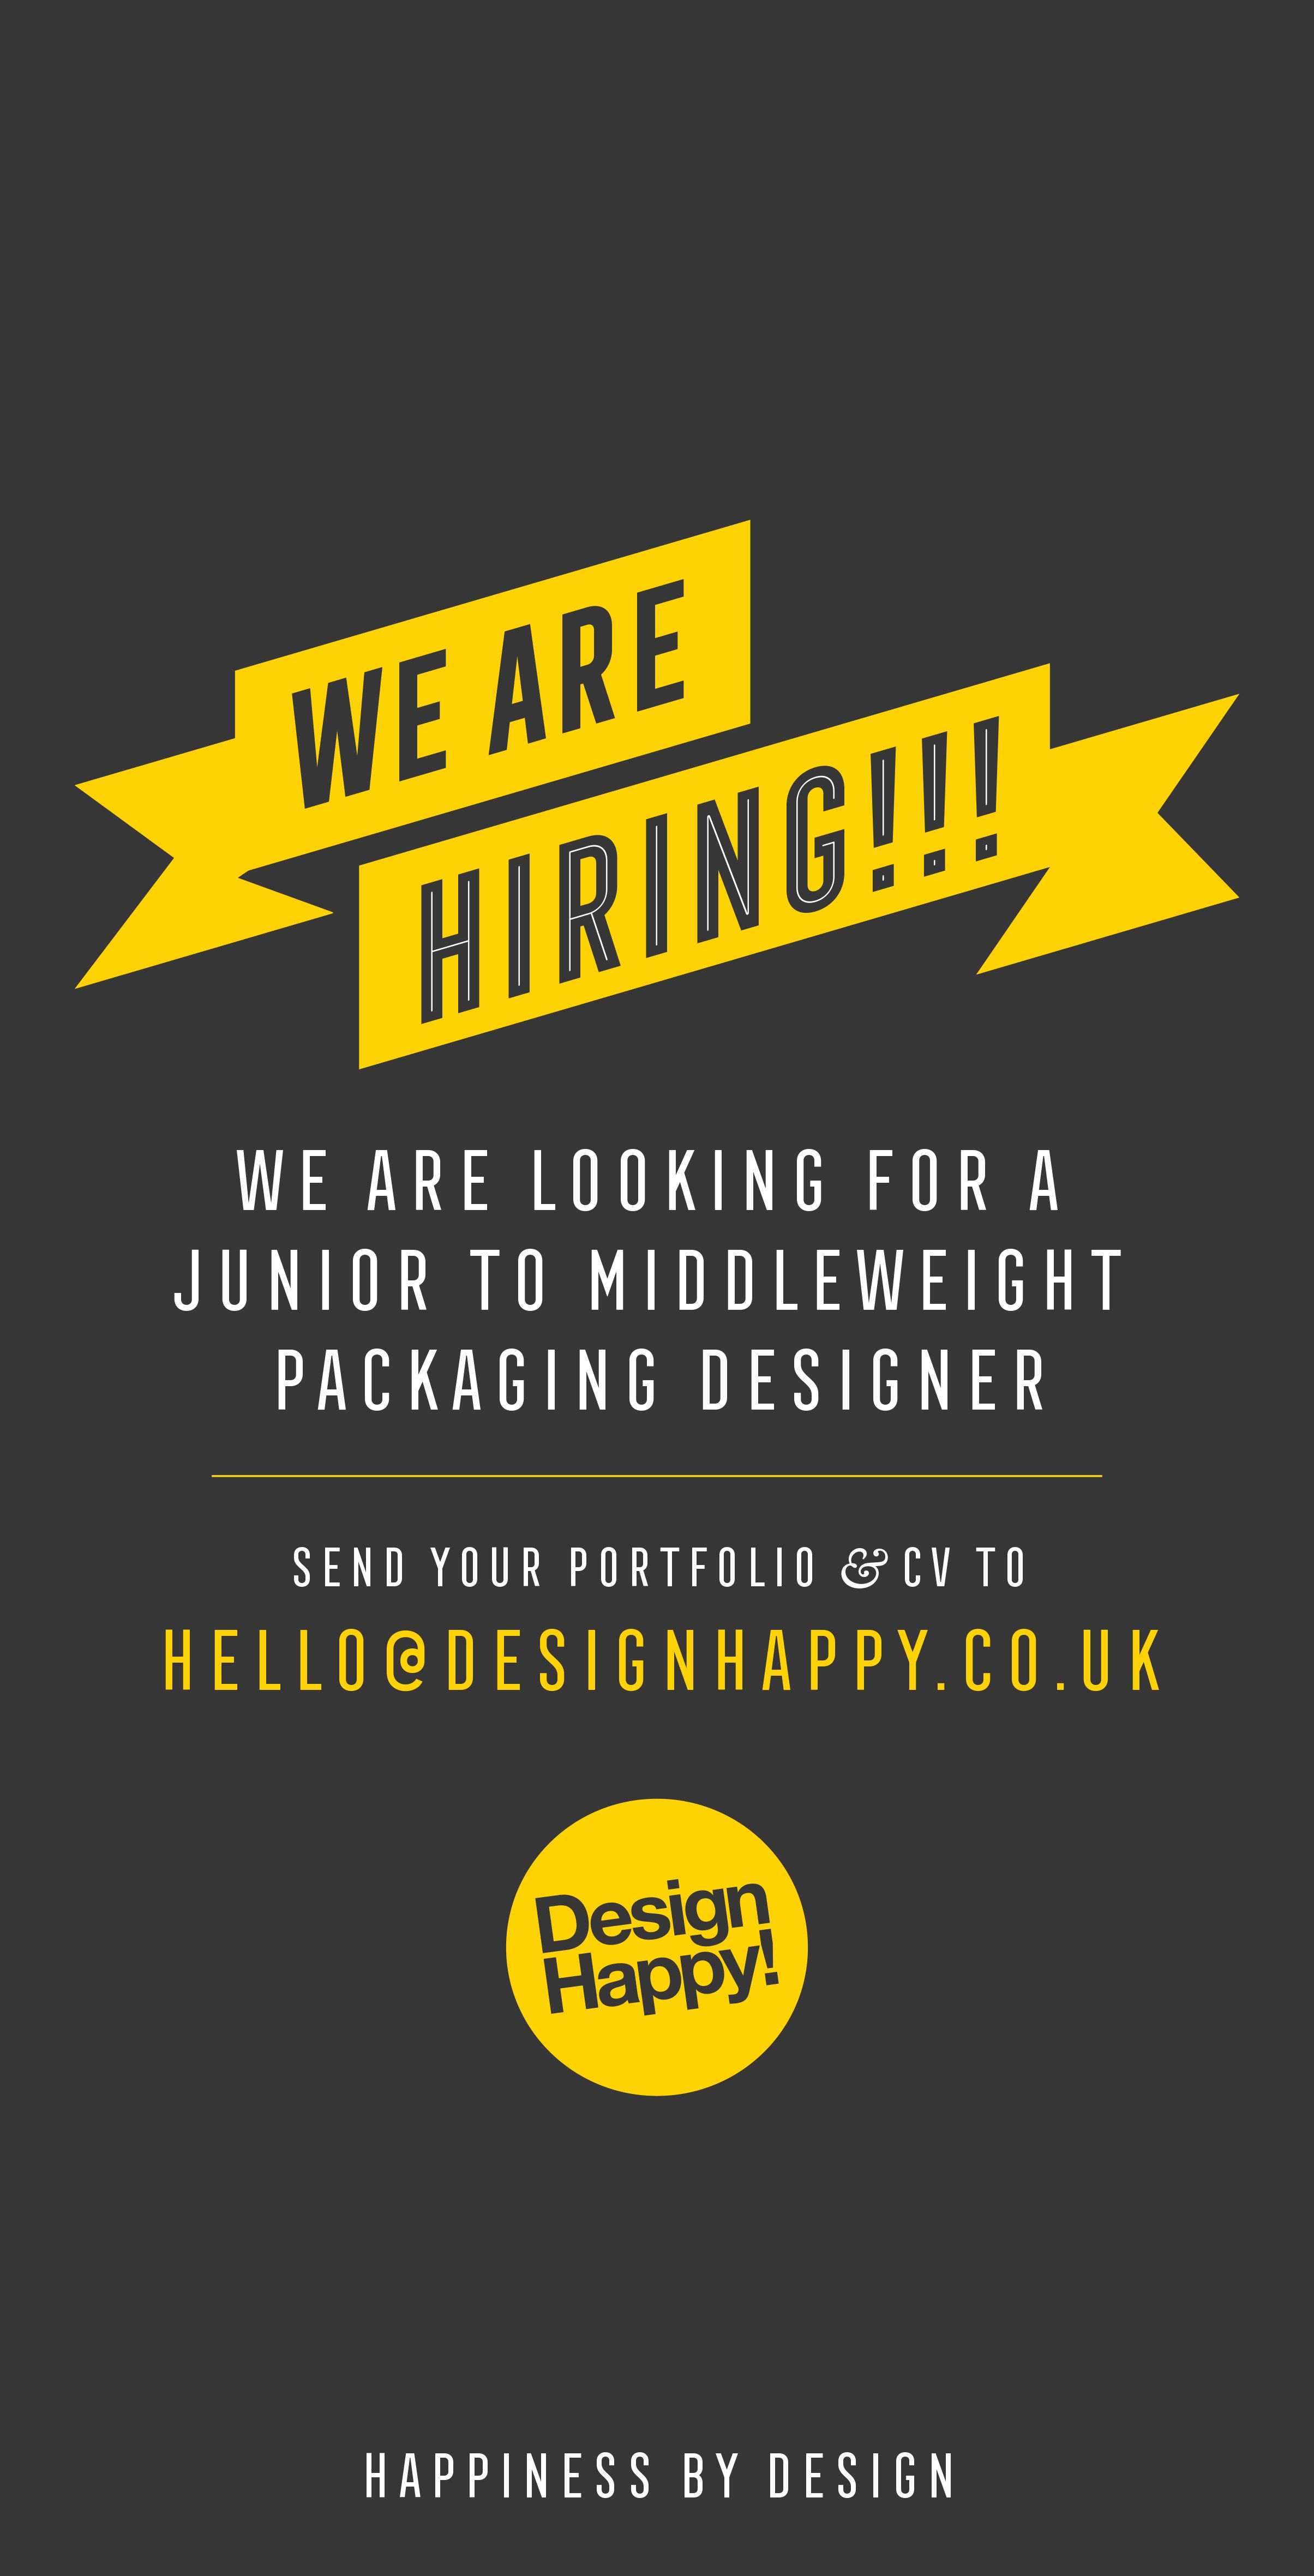 We are hiring! Design Happy are seeking a talented and